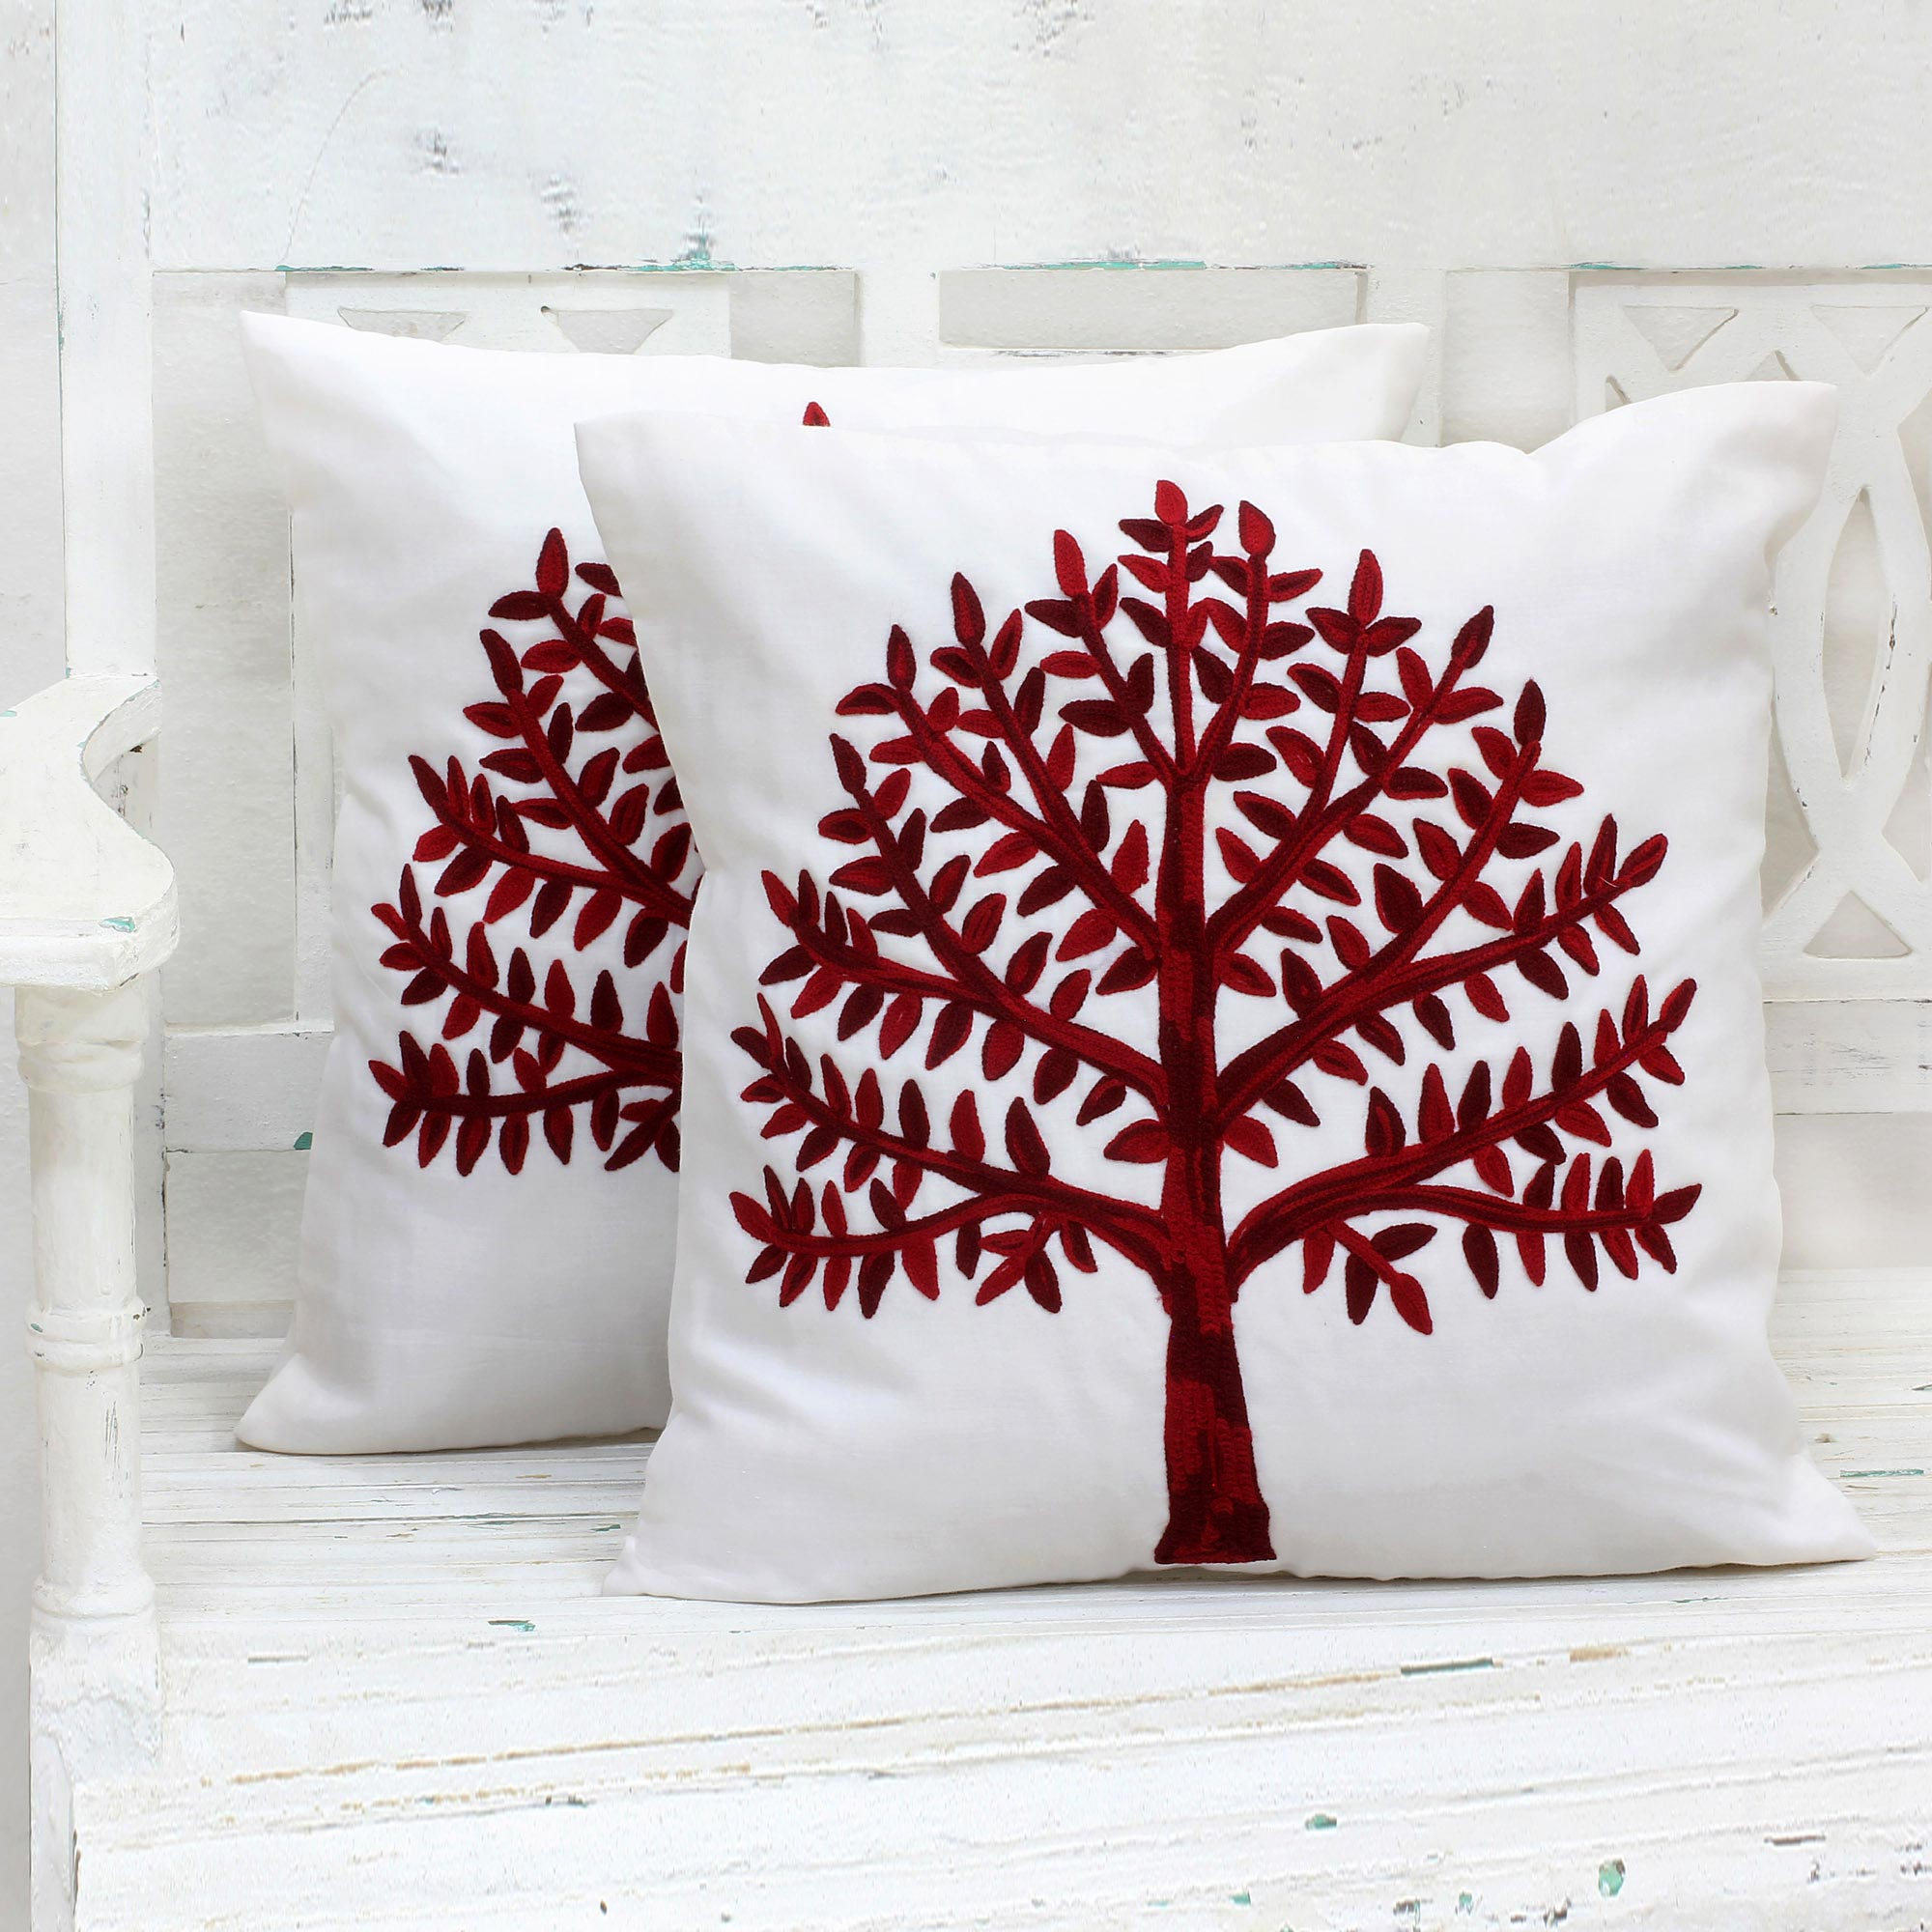 Chinar Tree artisan hand crafted Embroidered Cotton Cushion Covers Red Tree (Pair) India unique holiday decor treasures